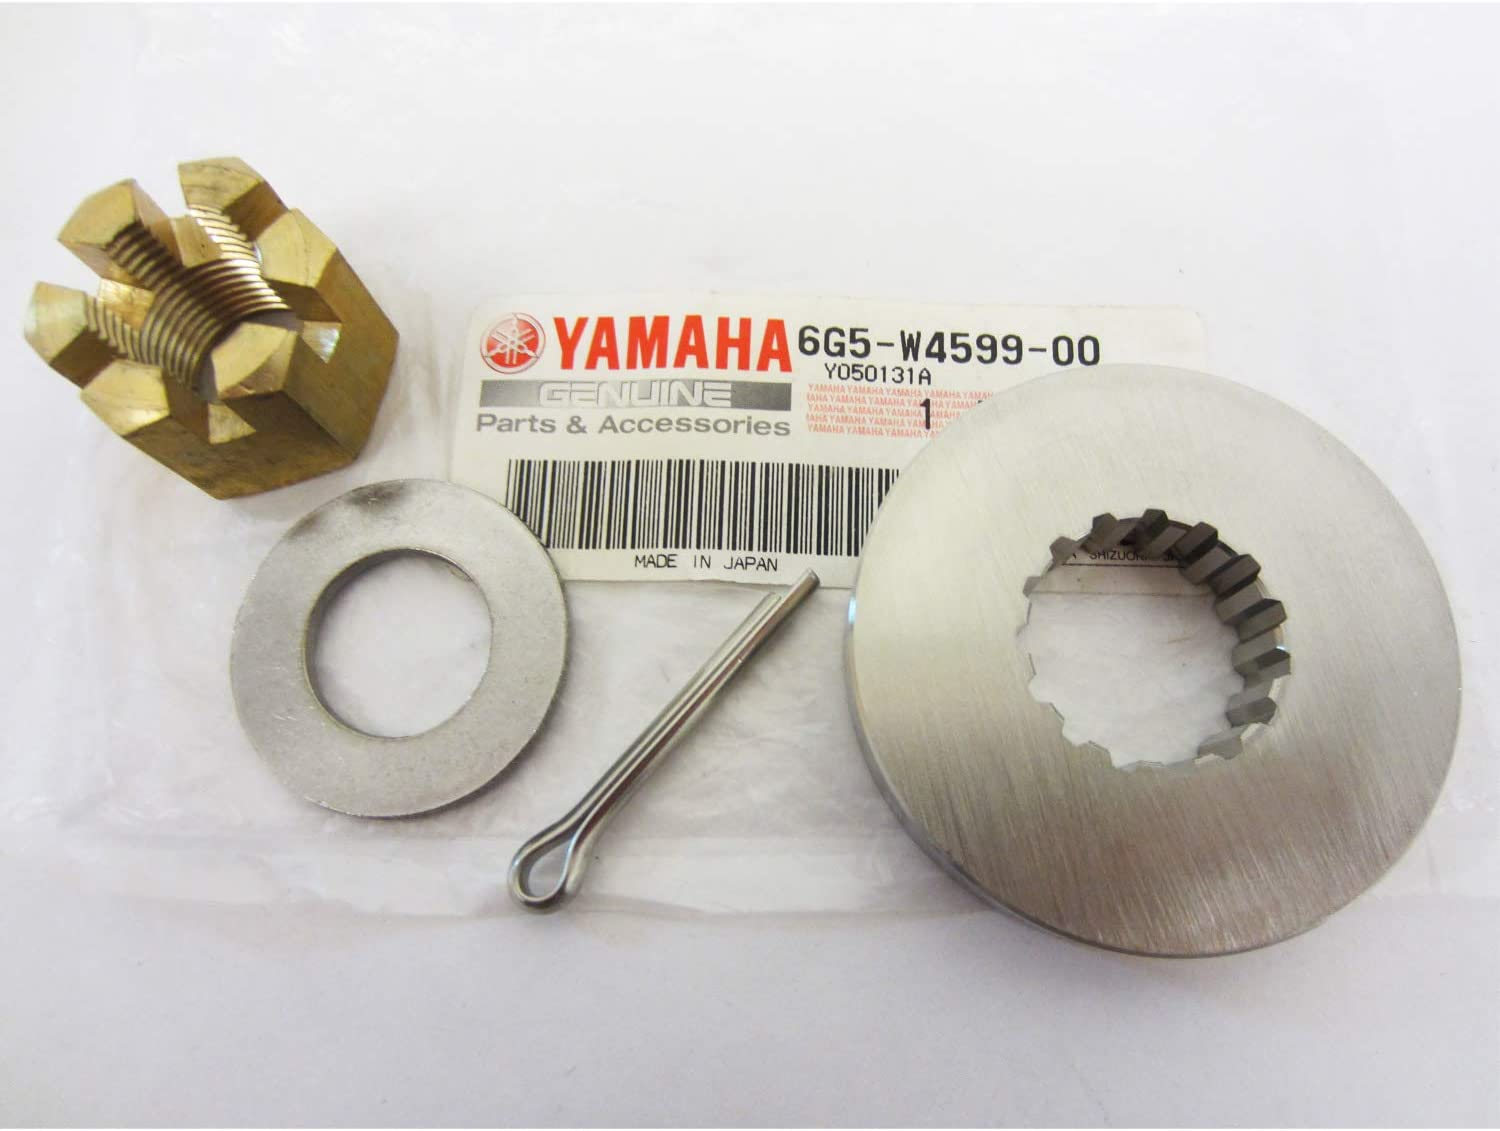 Thrust Washer//Spacer//Washer//Nut//Cotter Pin Included Jason Marine Propeller Installation Hardware Kits fit Yamaha Outboard40-60HP